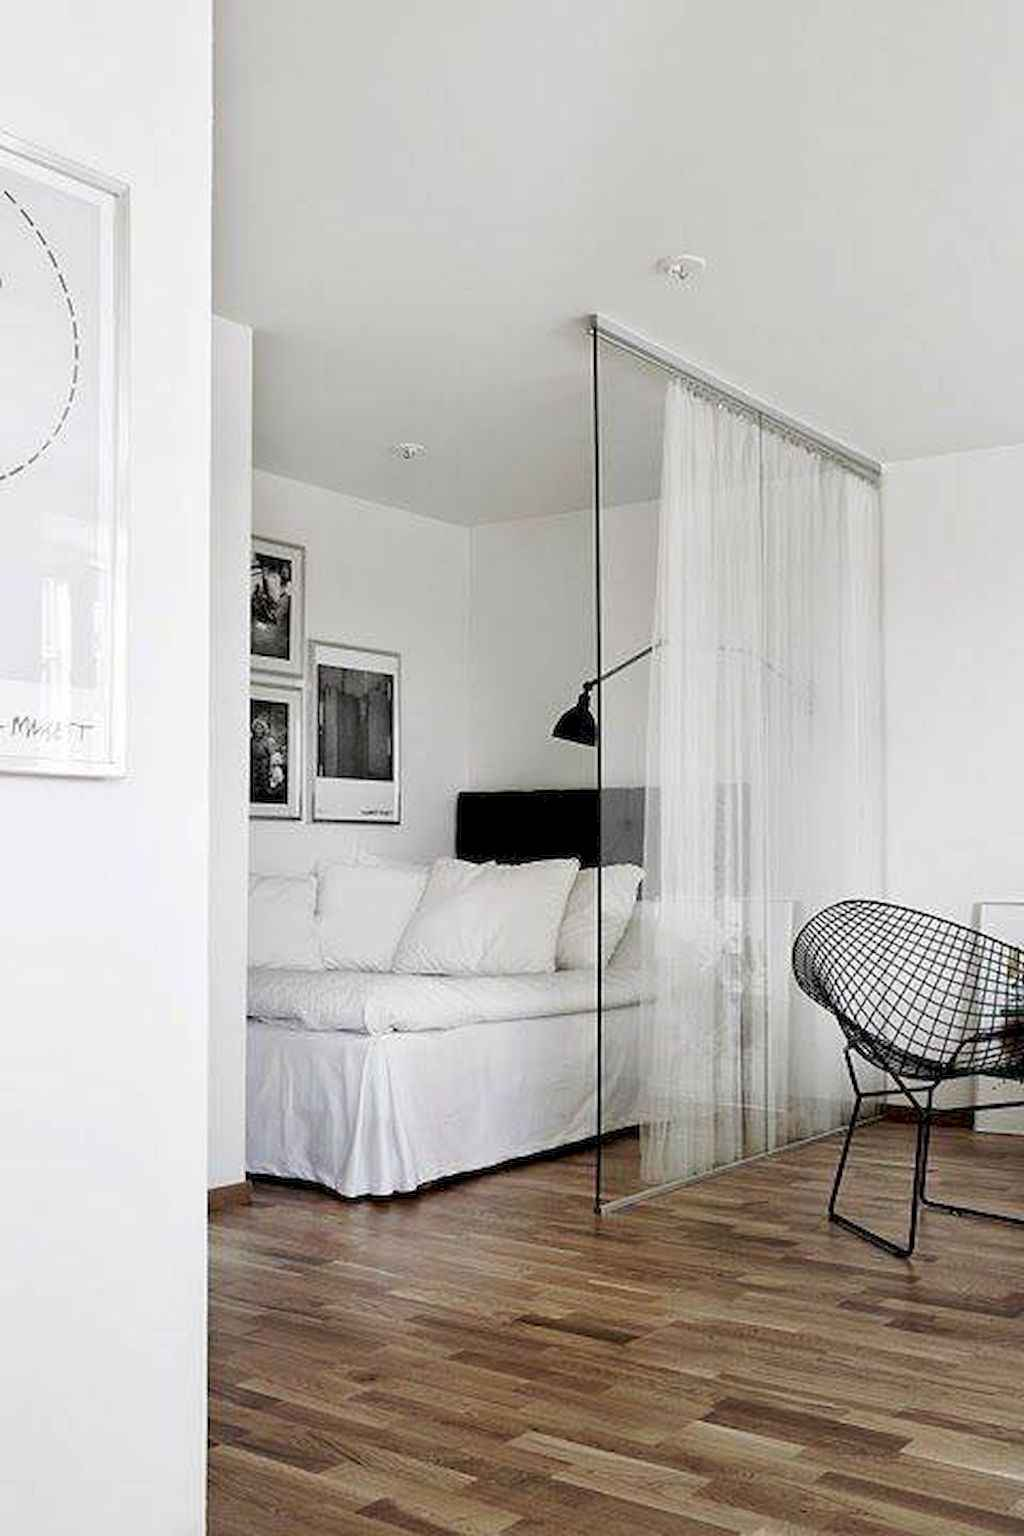 Beautiful First Home Decorating Ideas On A Budget: First Apartment Decorating Ideas On A Budget (2)